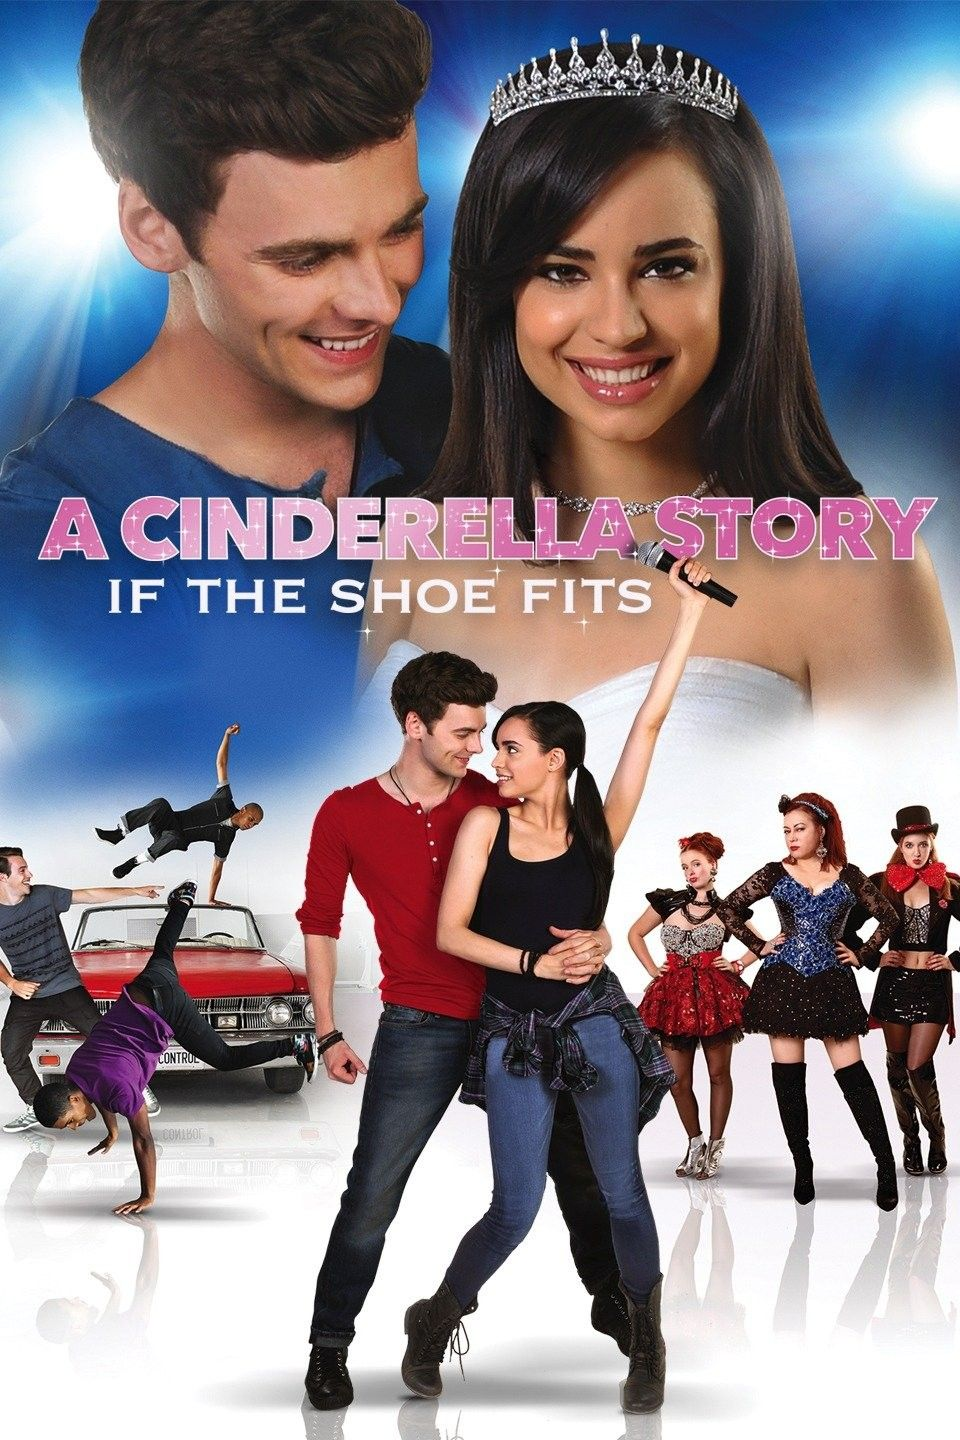 Pin by crystal mascioli on cinderella story movies in 2020